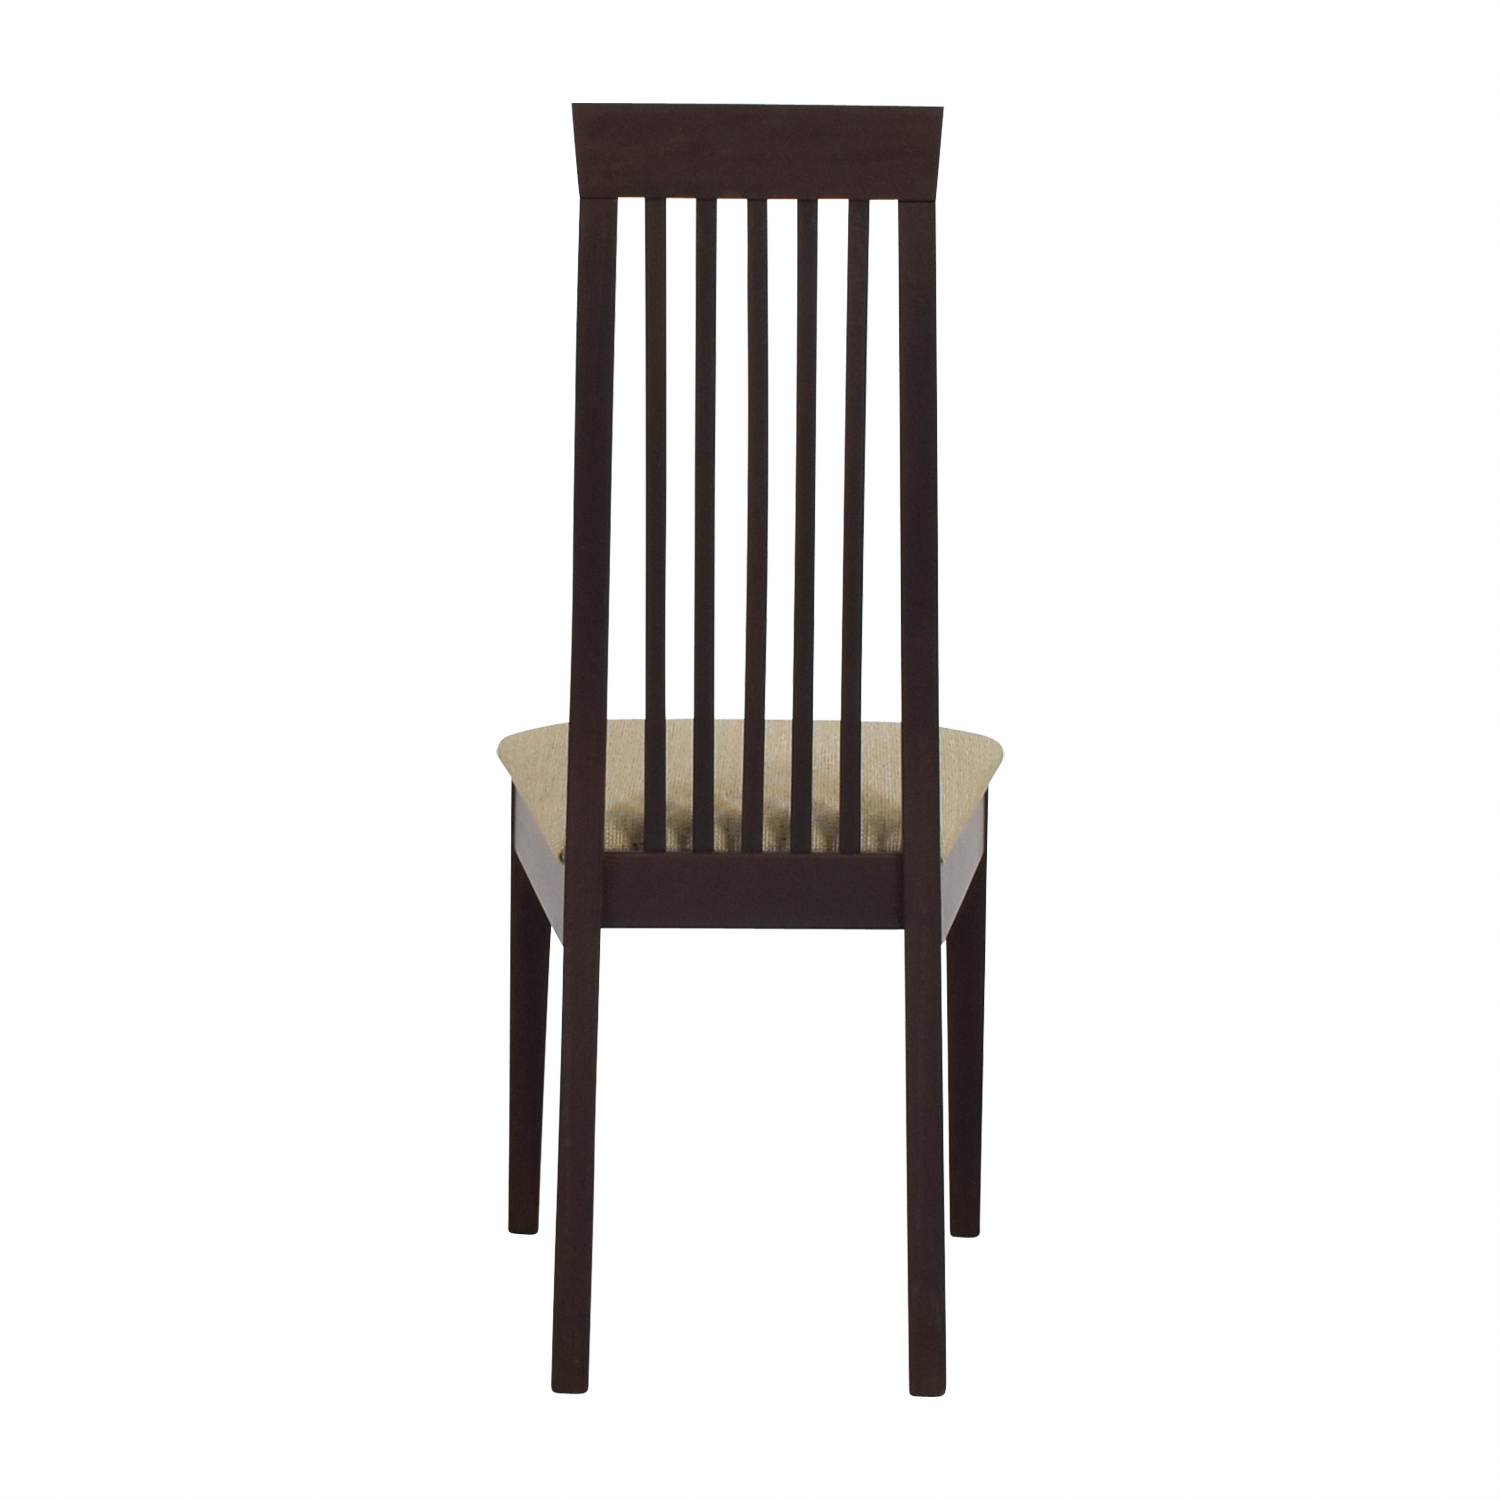 Wood Vertical Slat Back with Tan Cushioned Chair dimensions